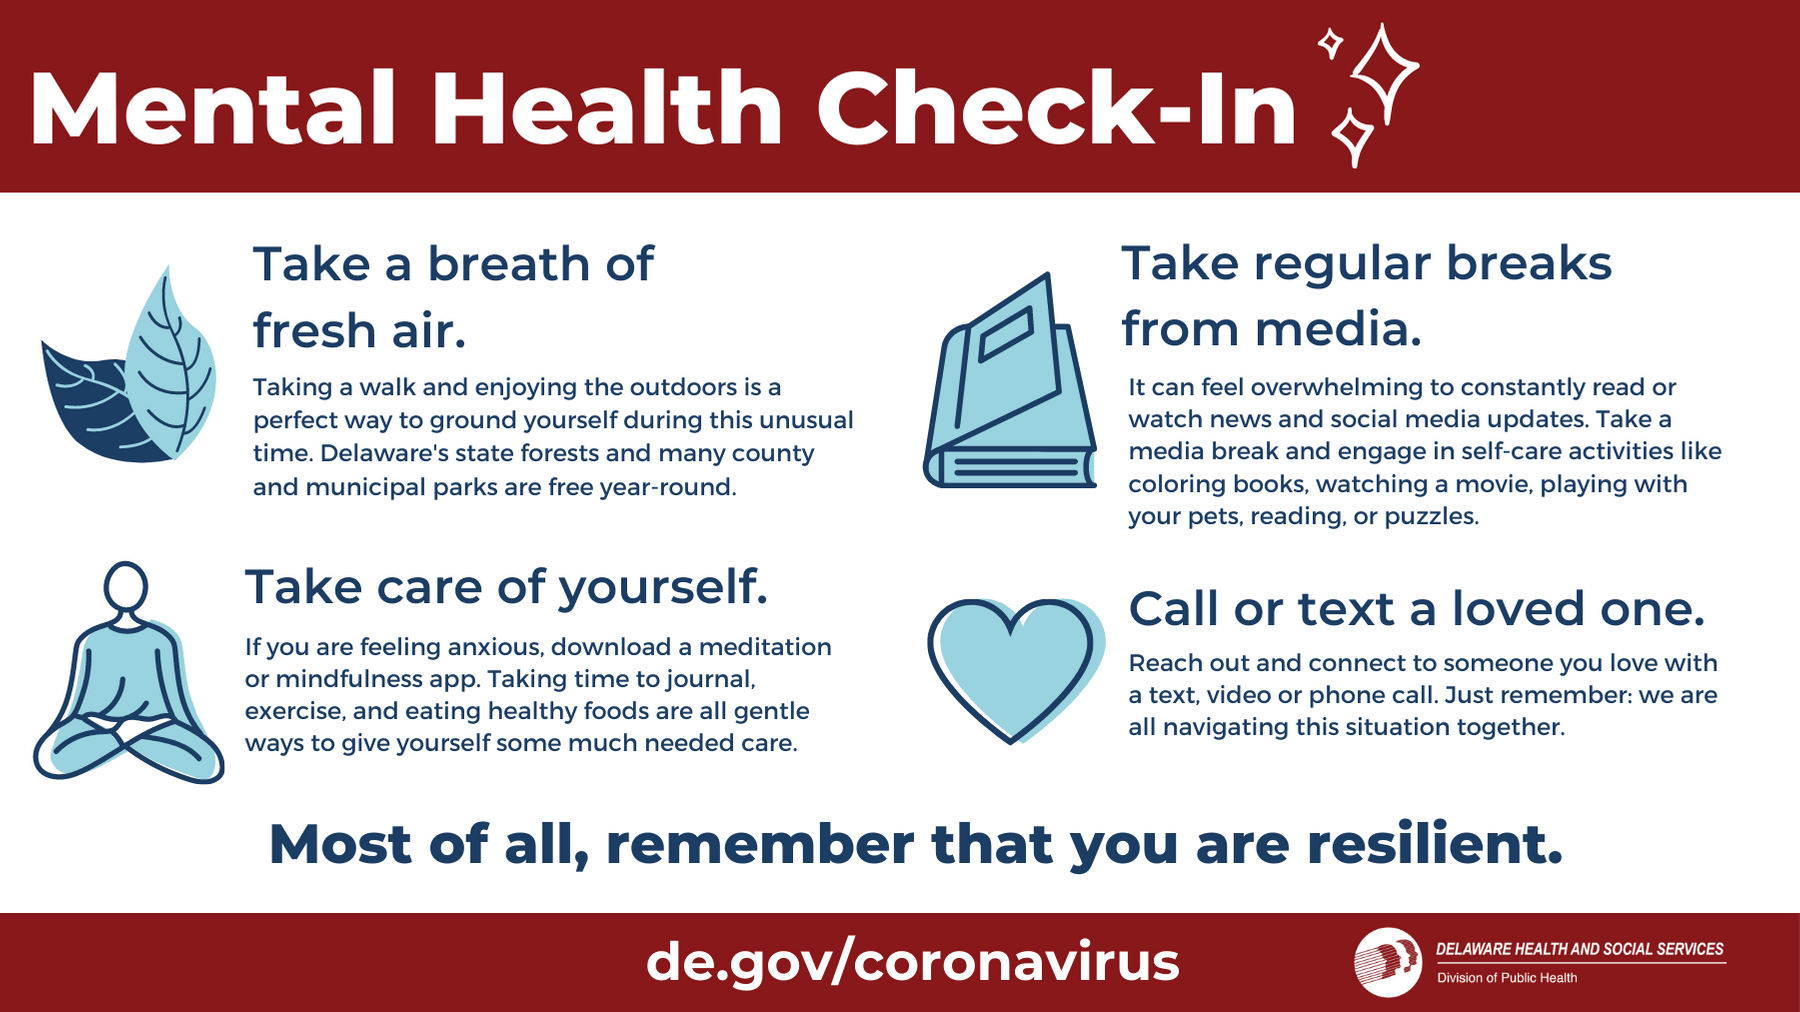 Tips on how to check in on your mental health during the COVID-19 pandemic.